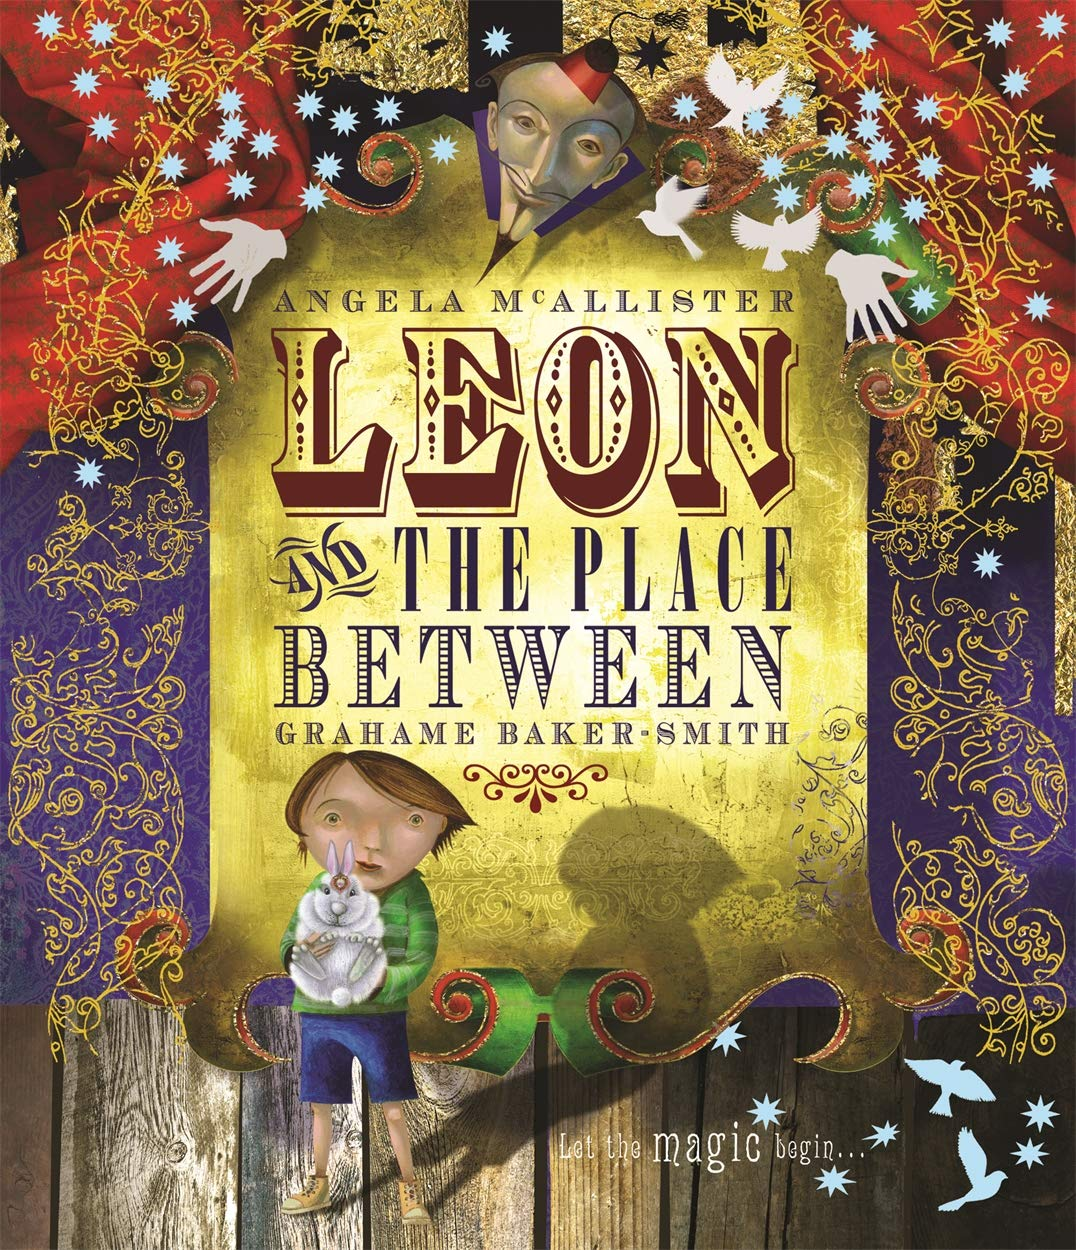 Image result for leon and the place between